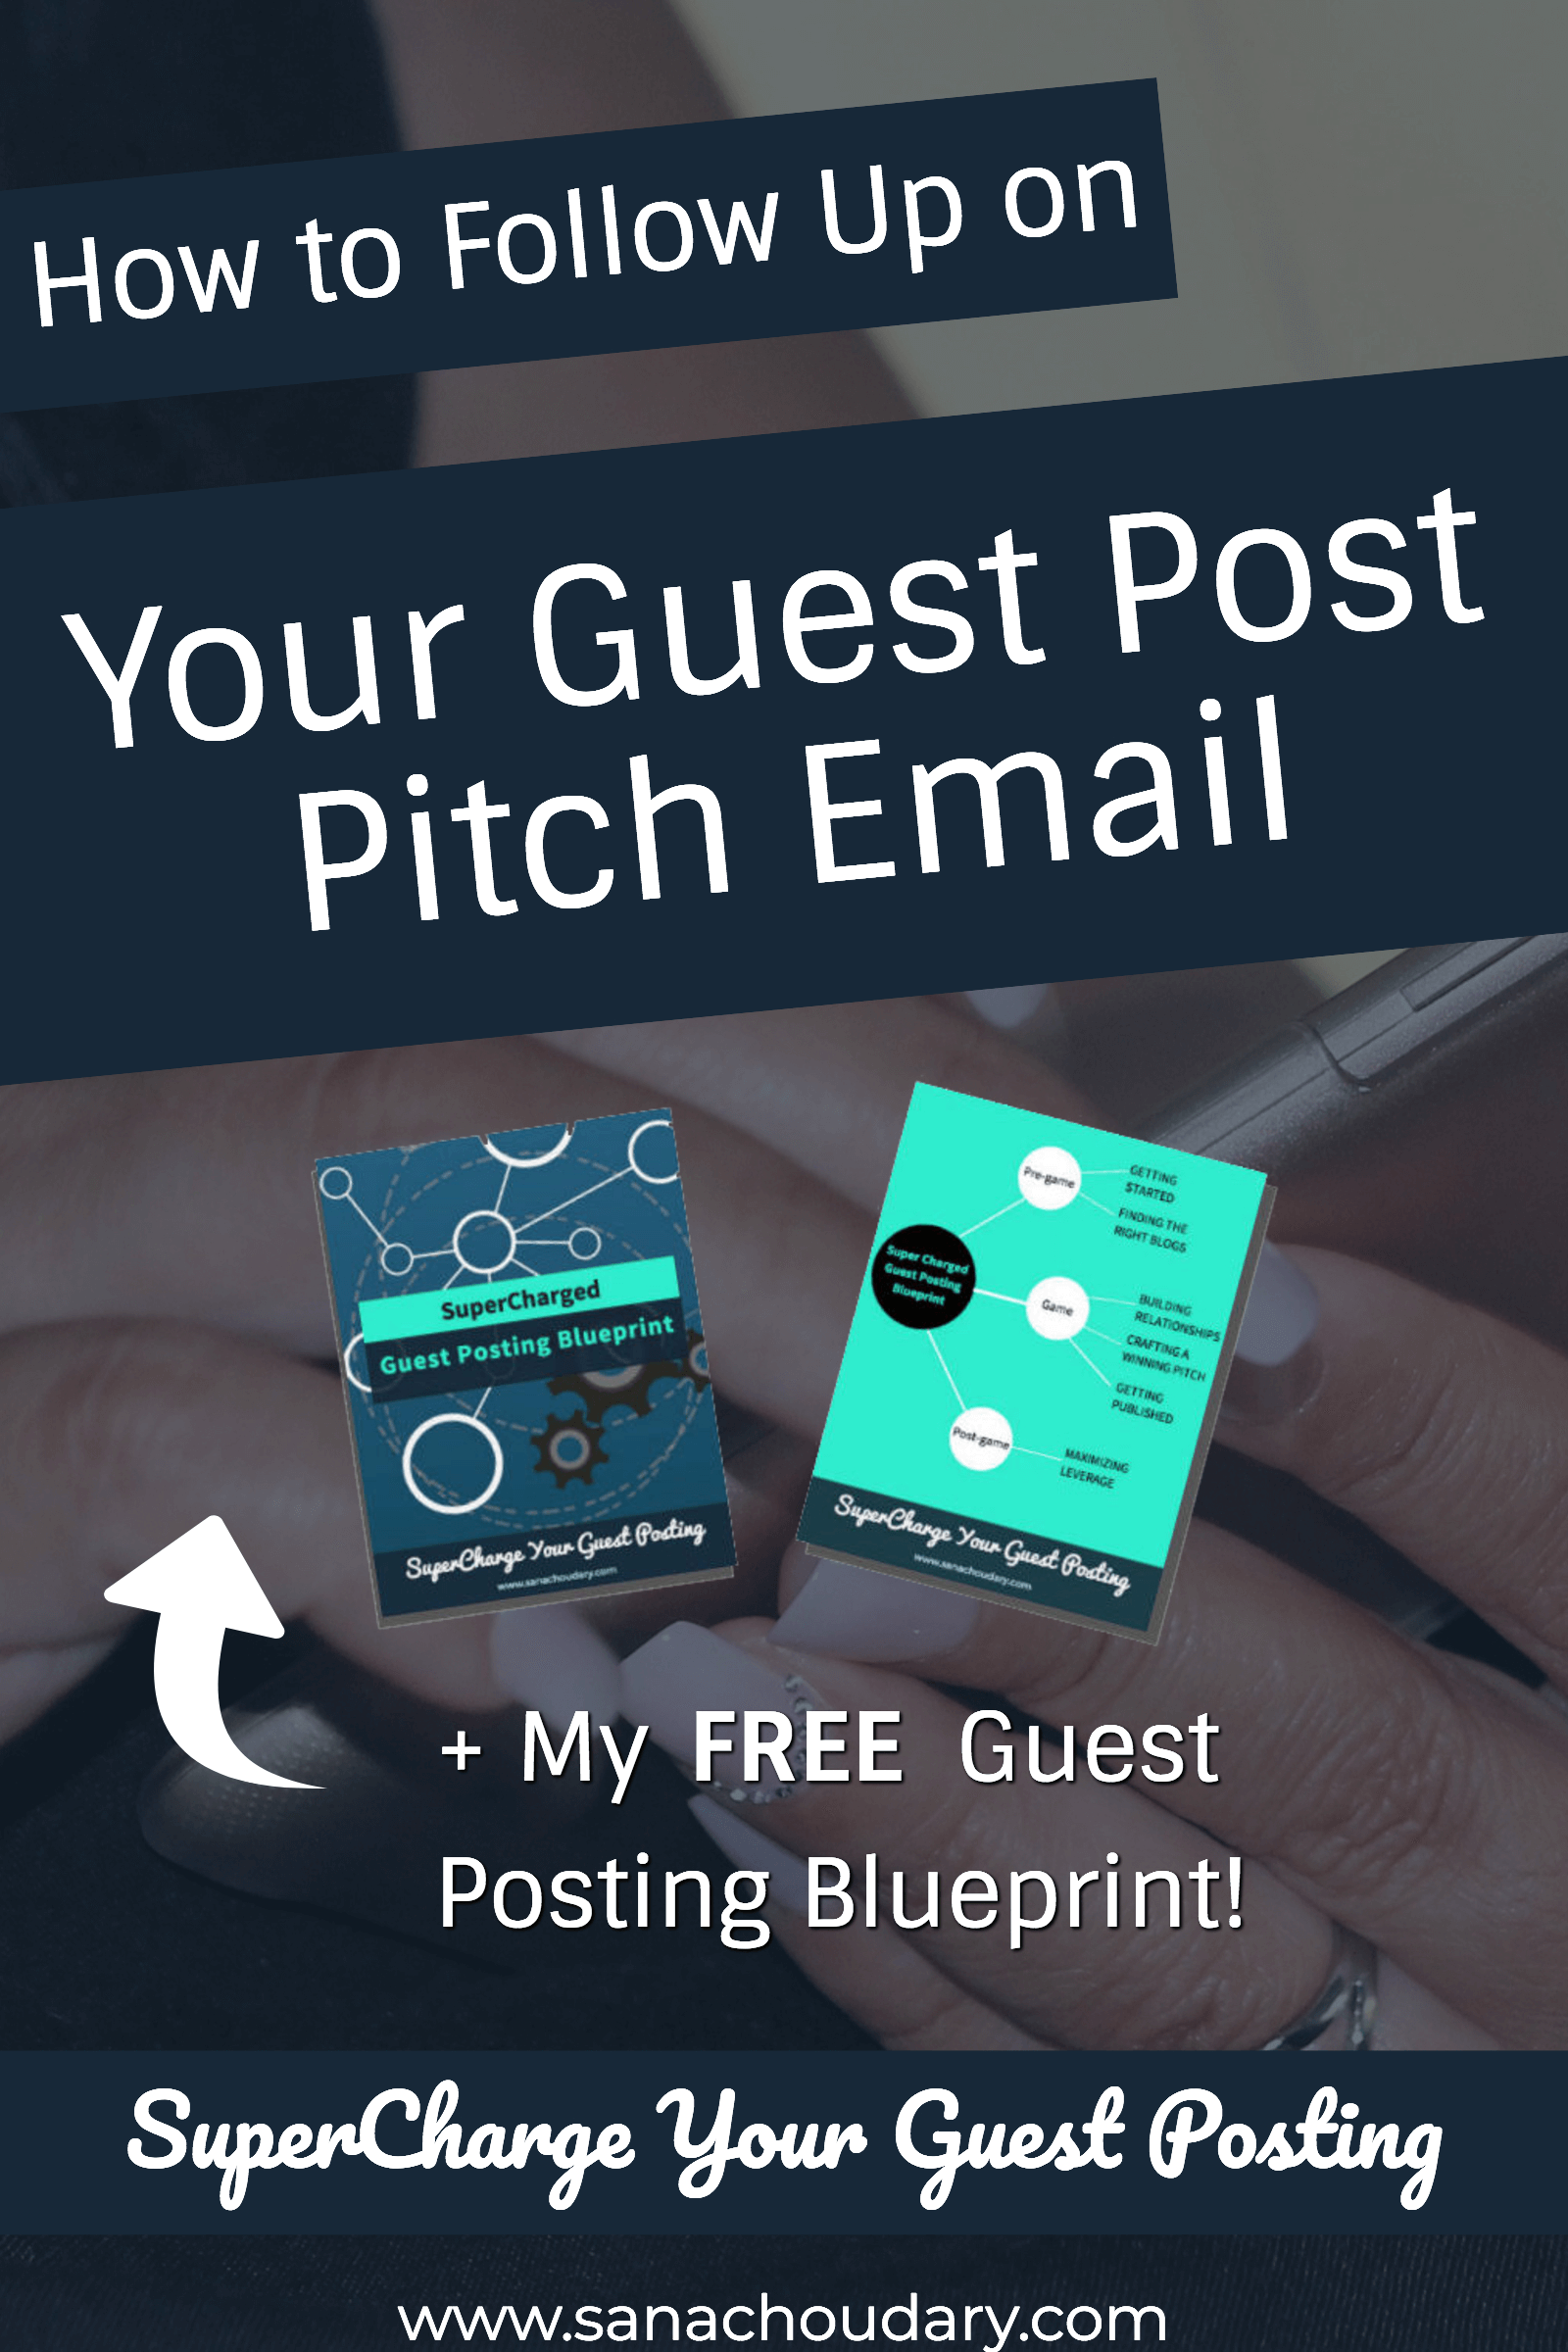 How to follow up on your guest post pitch email | Guest